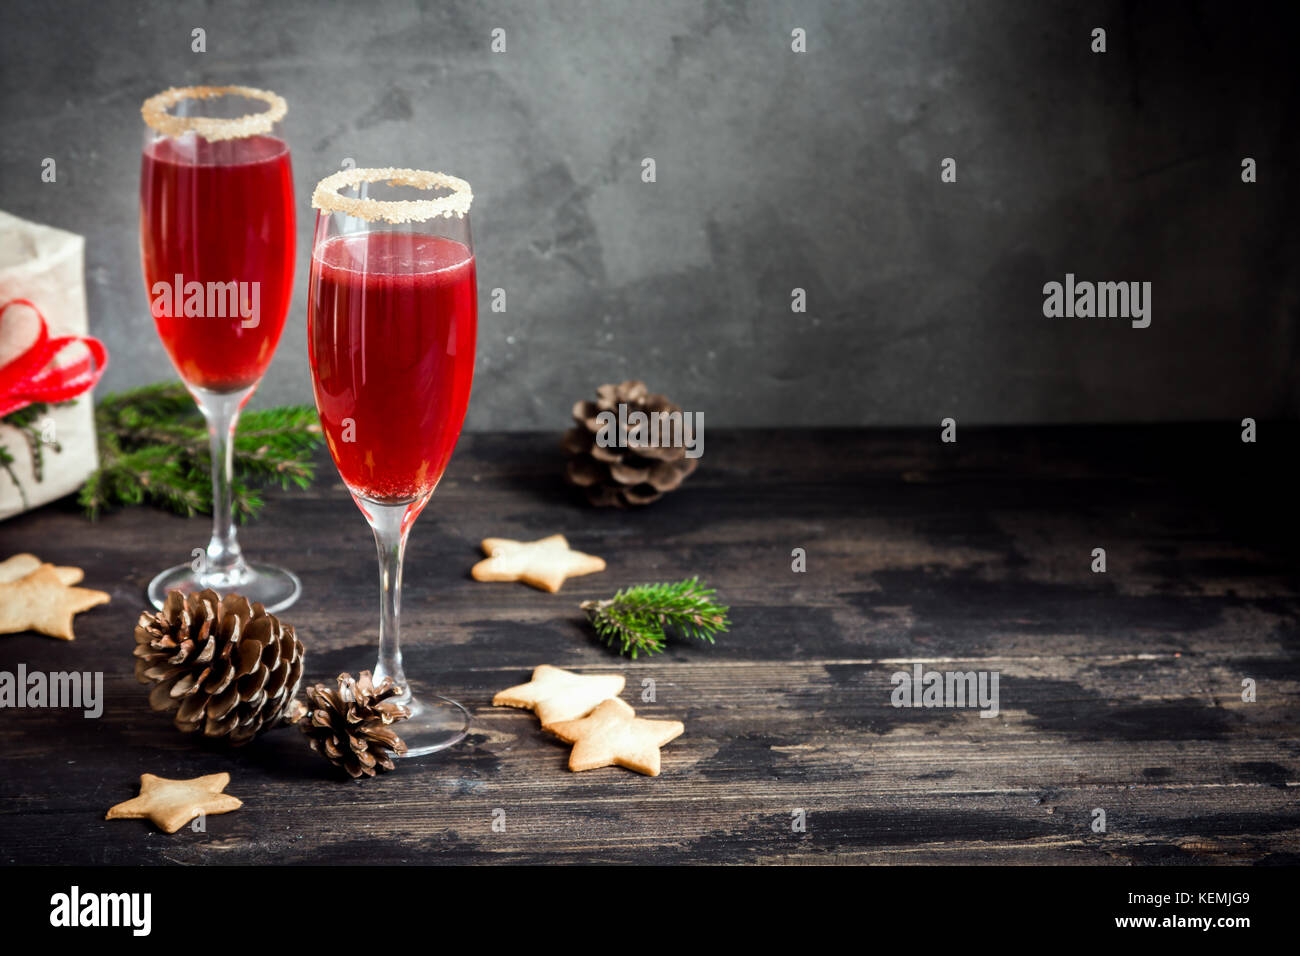 Mimosa festive drink for Christmas - champagne red cocktail Mimosa with cranberry for Christmas party, copy space - Stock Image